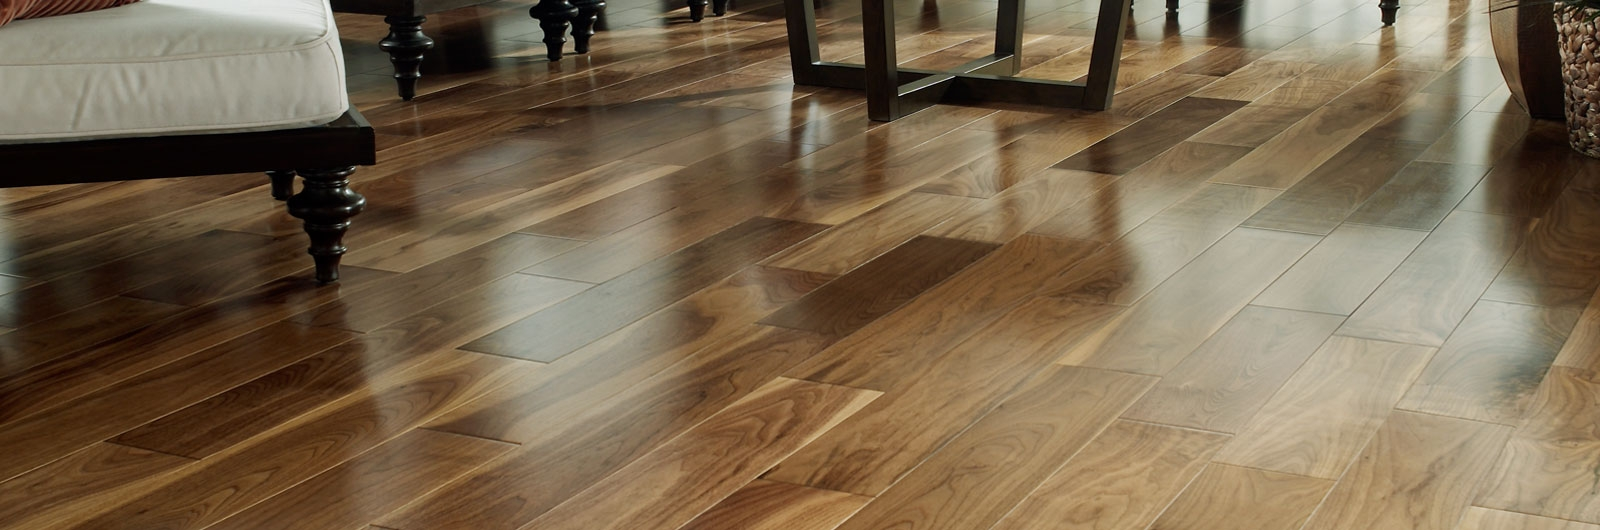 Midwest Wood Floors Mn